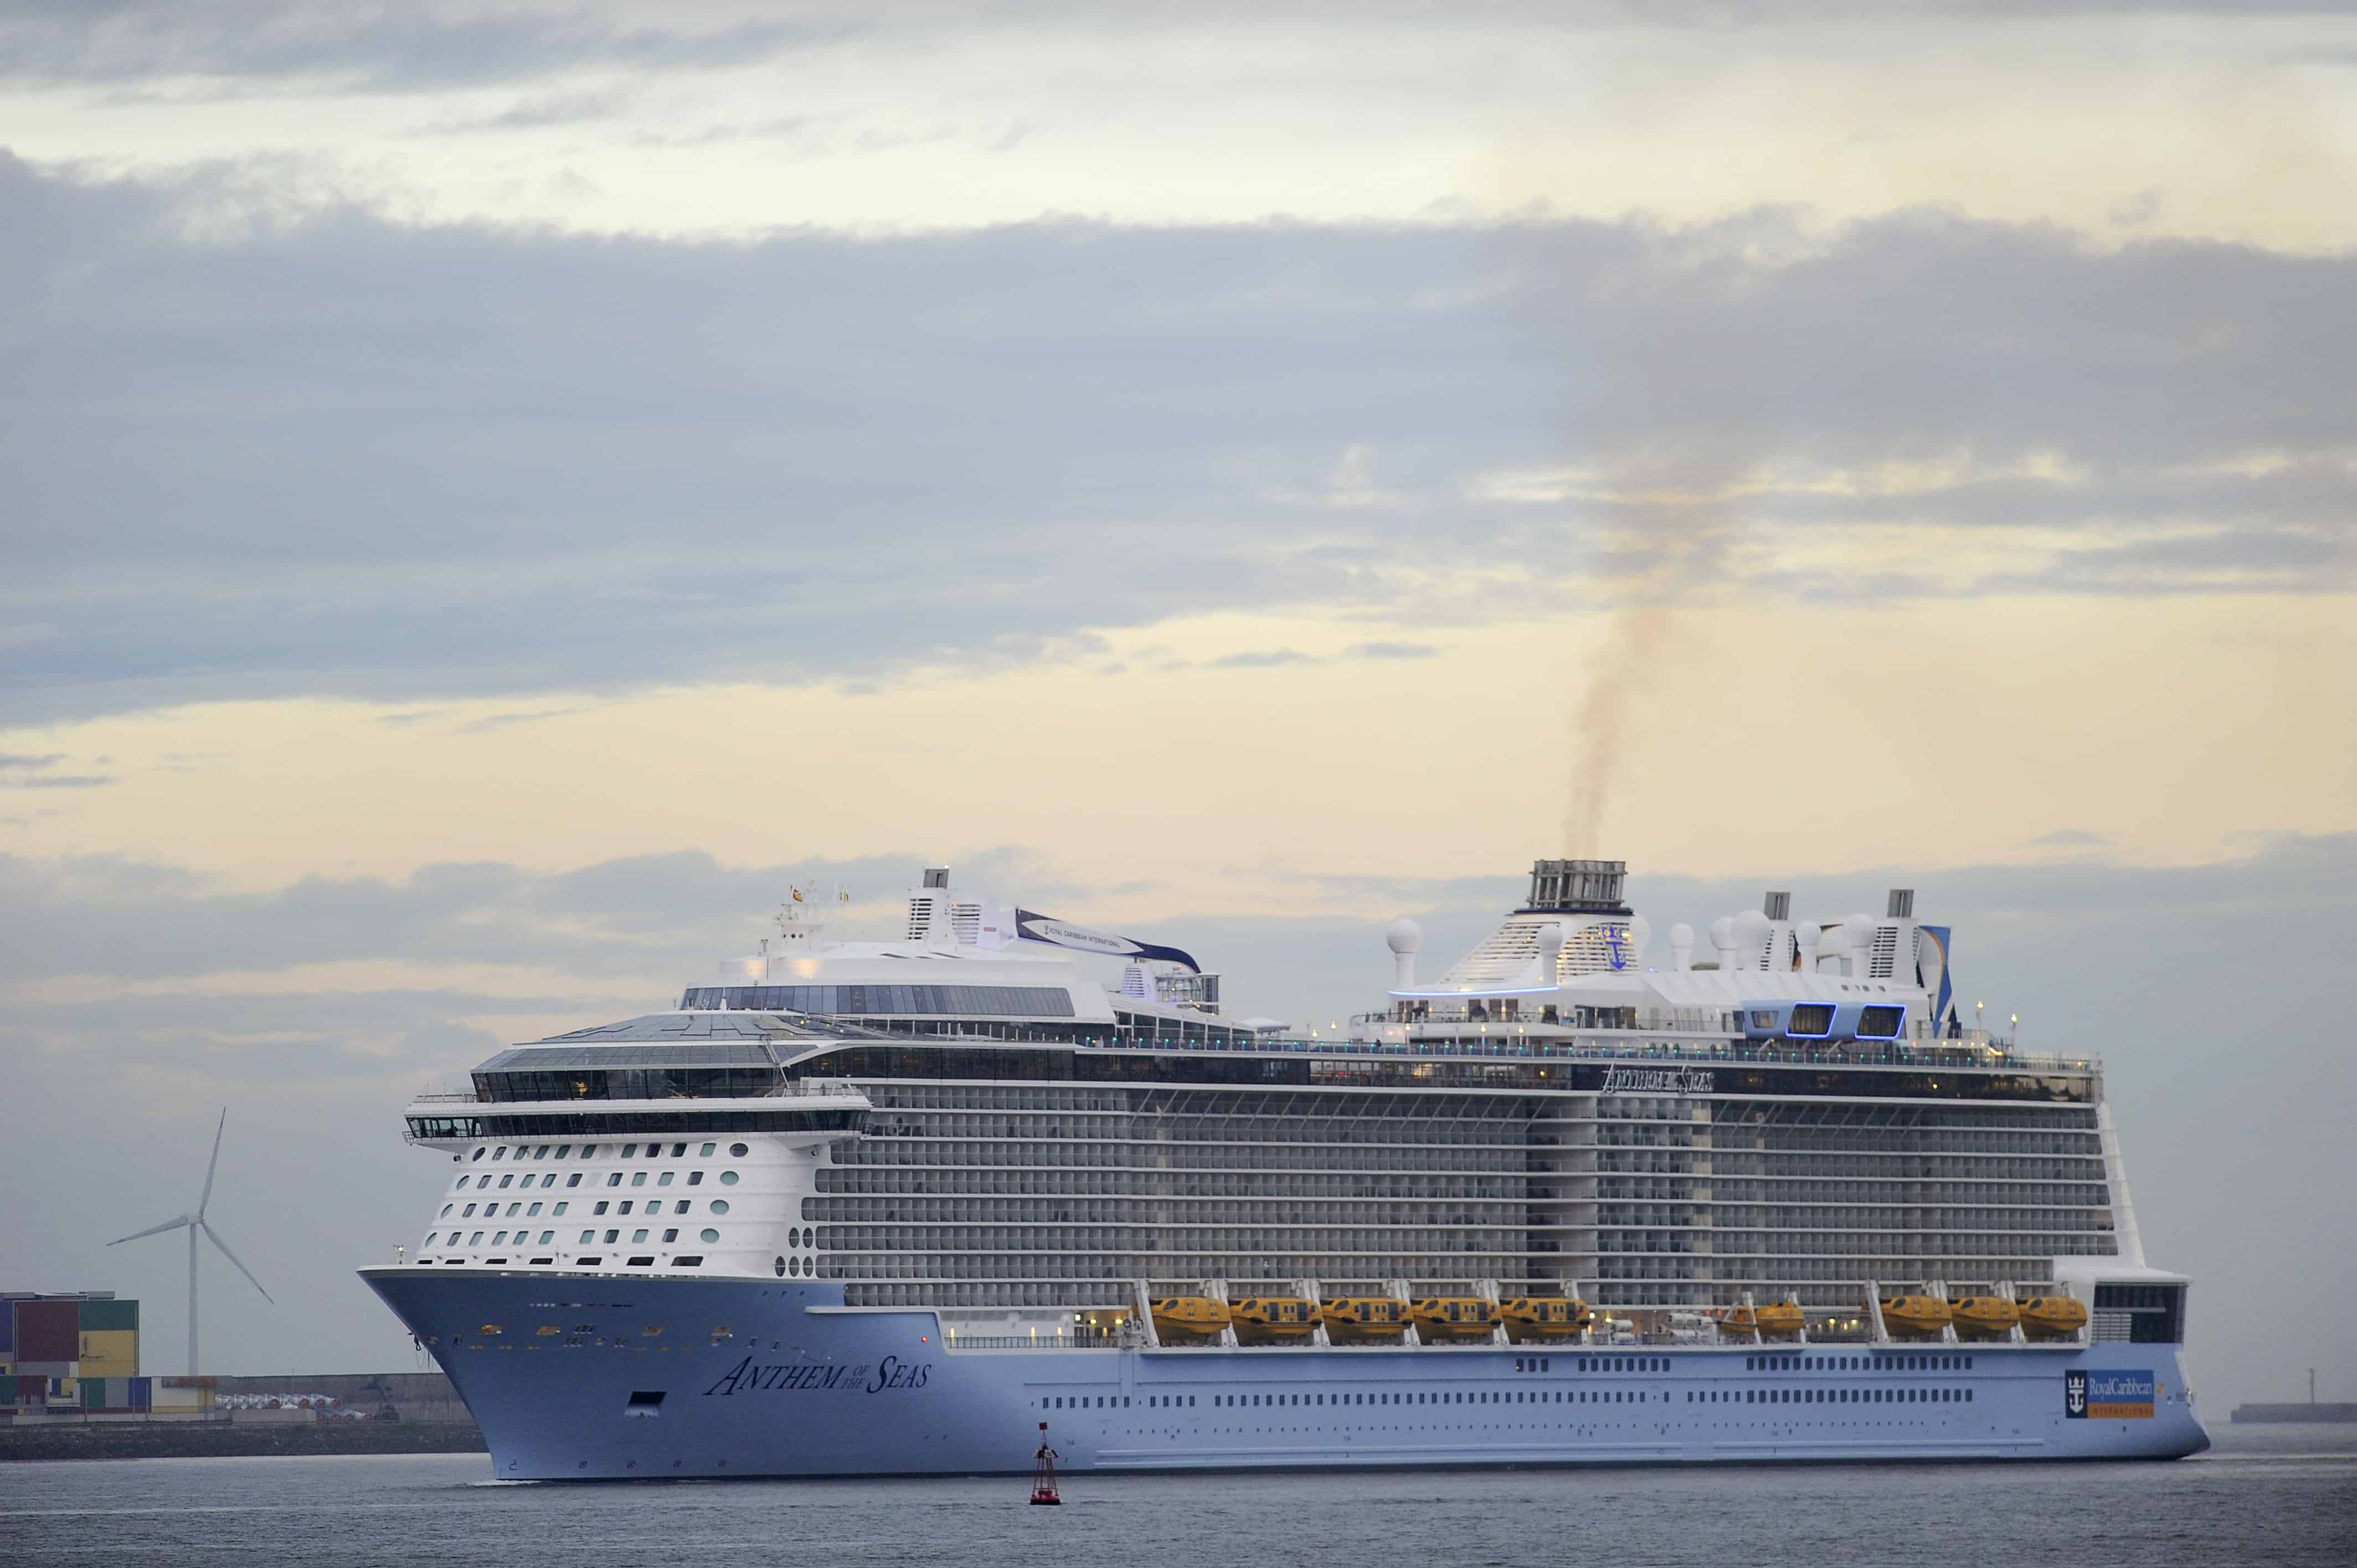 Royal Caribbean's the Anthem of the Seas